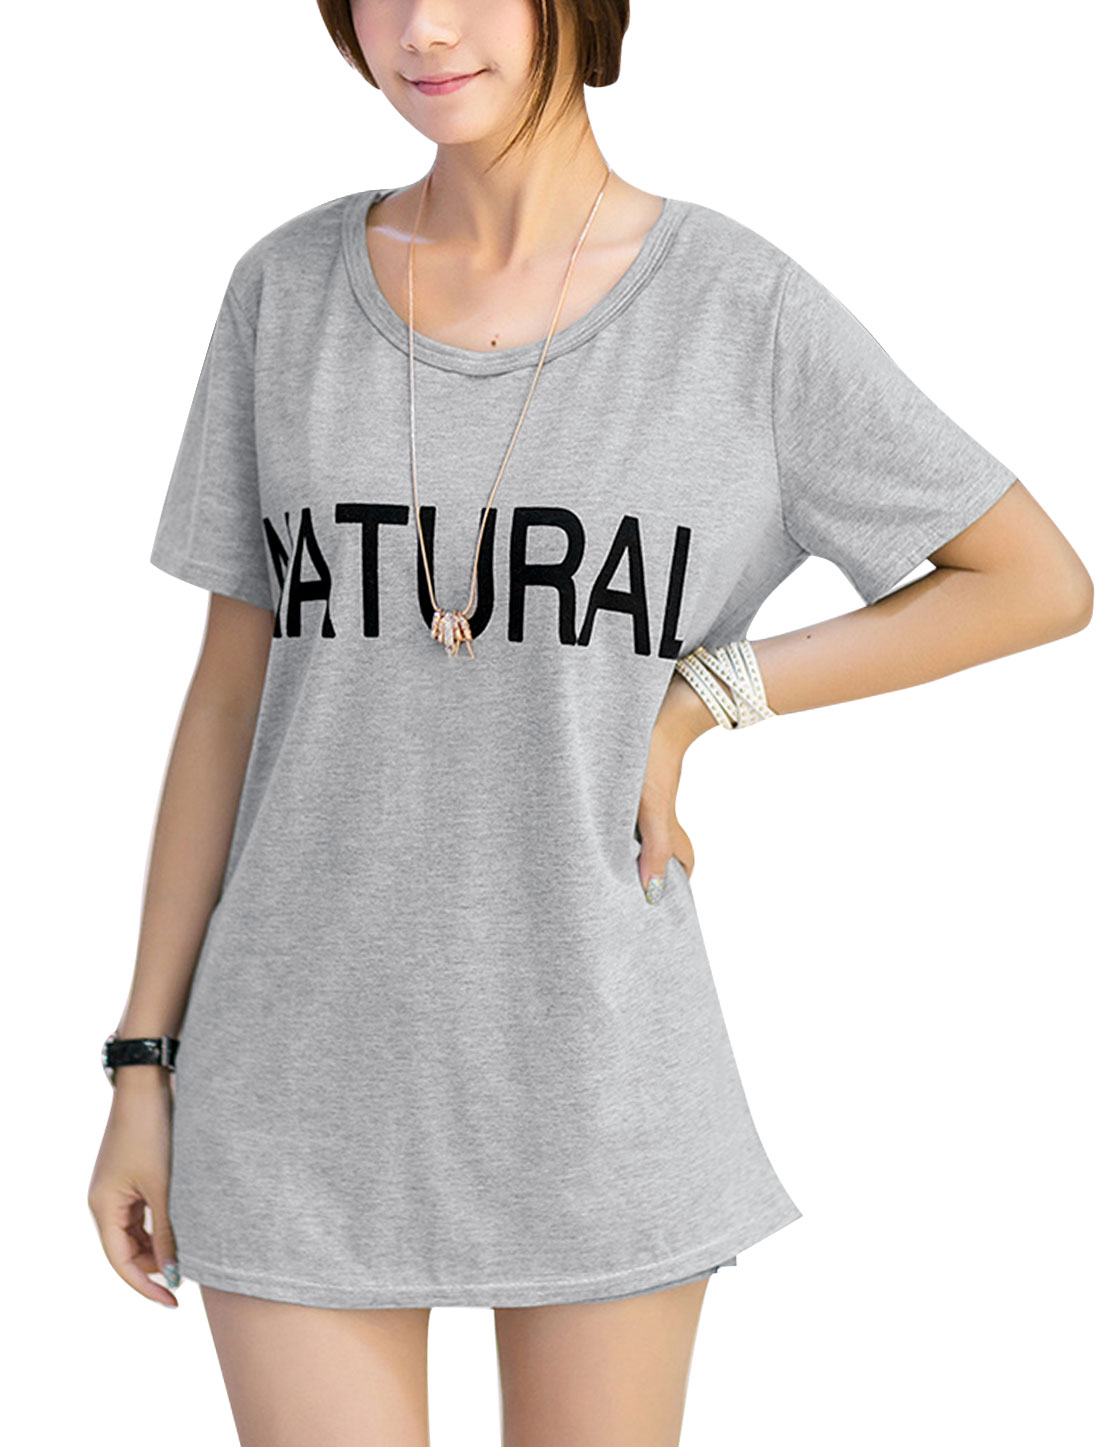 Lady Casual Stylish Letters Prints Round Neck Basic T-Shirt Gray S